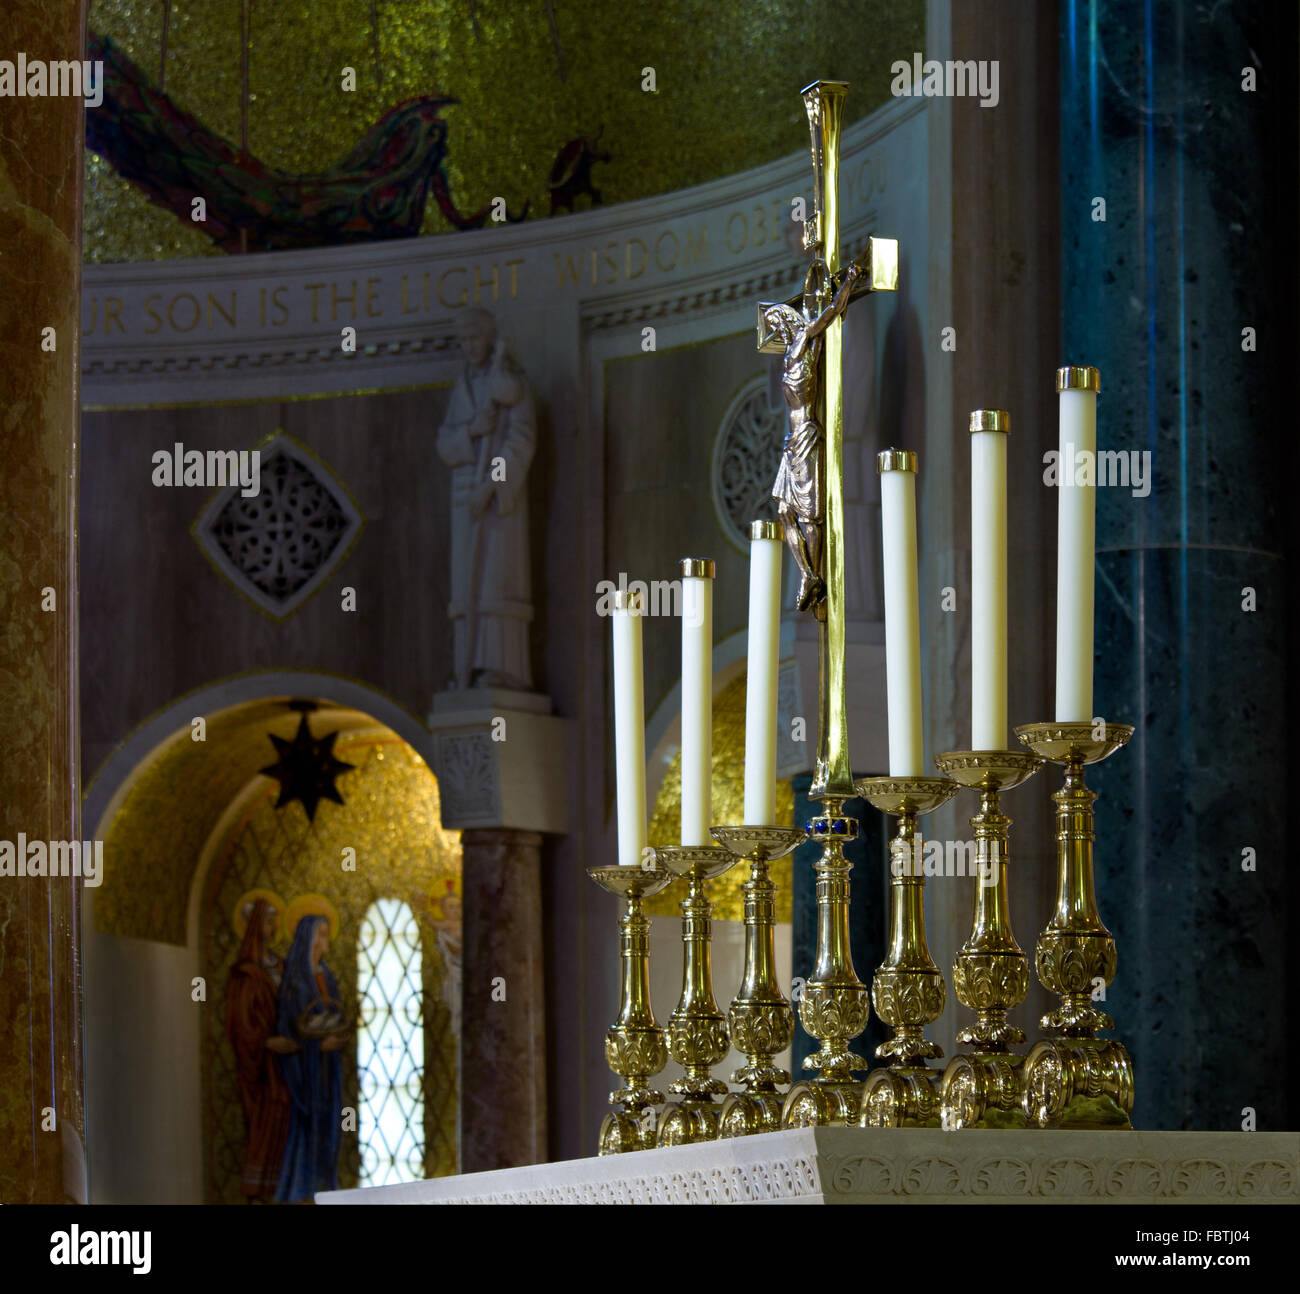 Ornate candlesticks on altar in church with gold cross Stock Photo